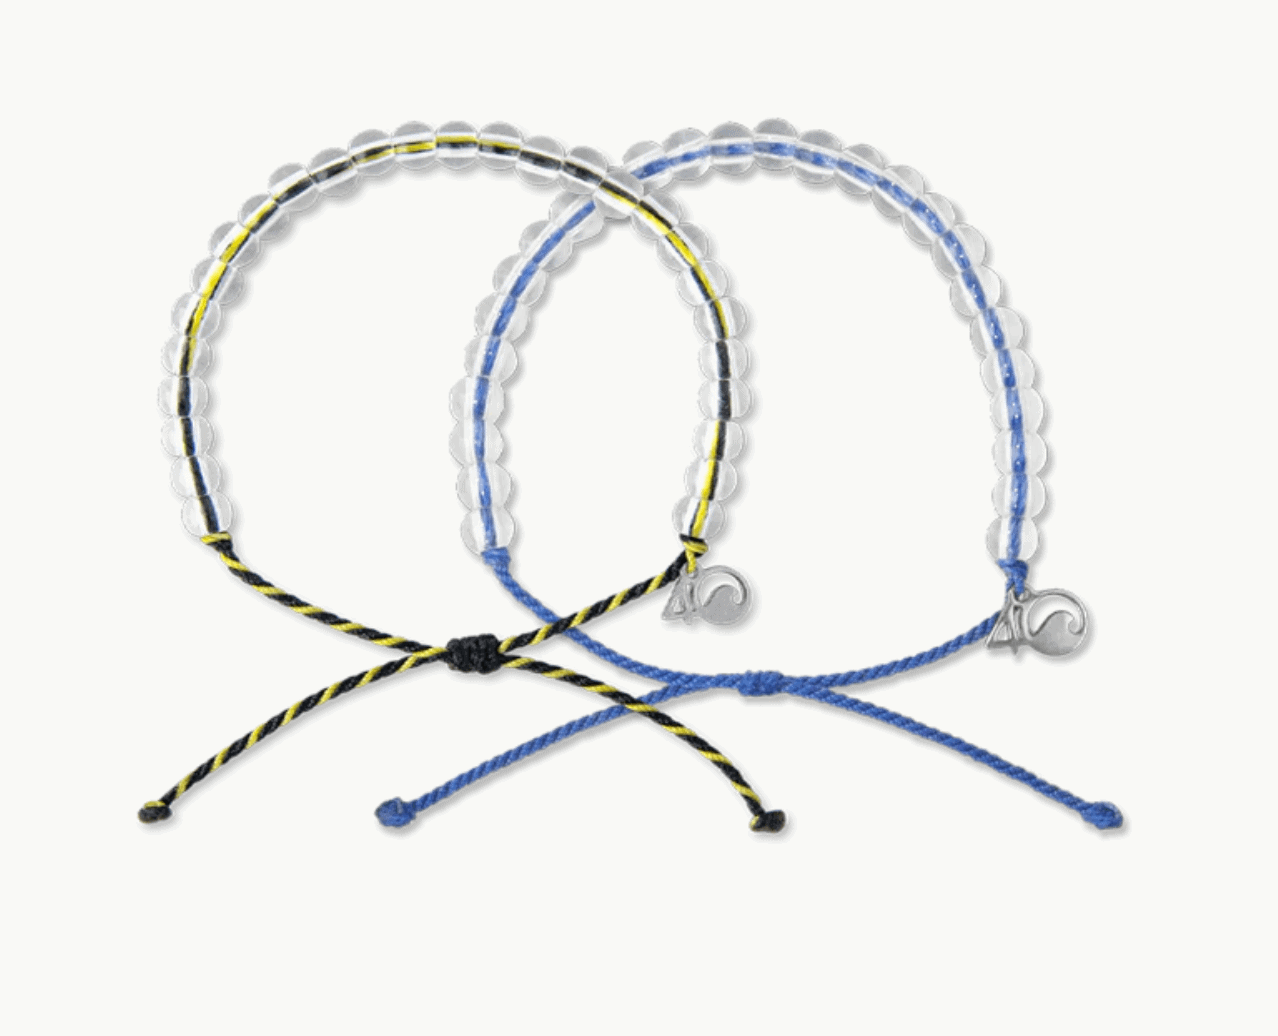 4ocean bracelets - Support ocean clean up with this sustainable travel gift